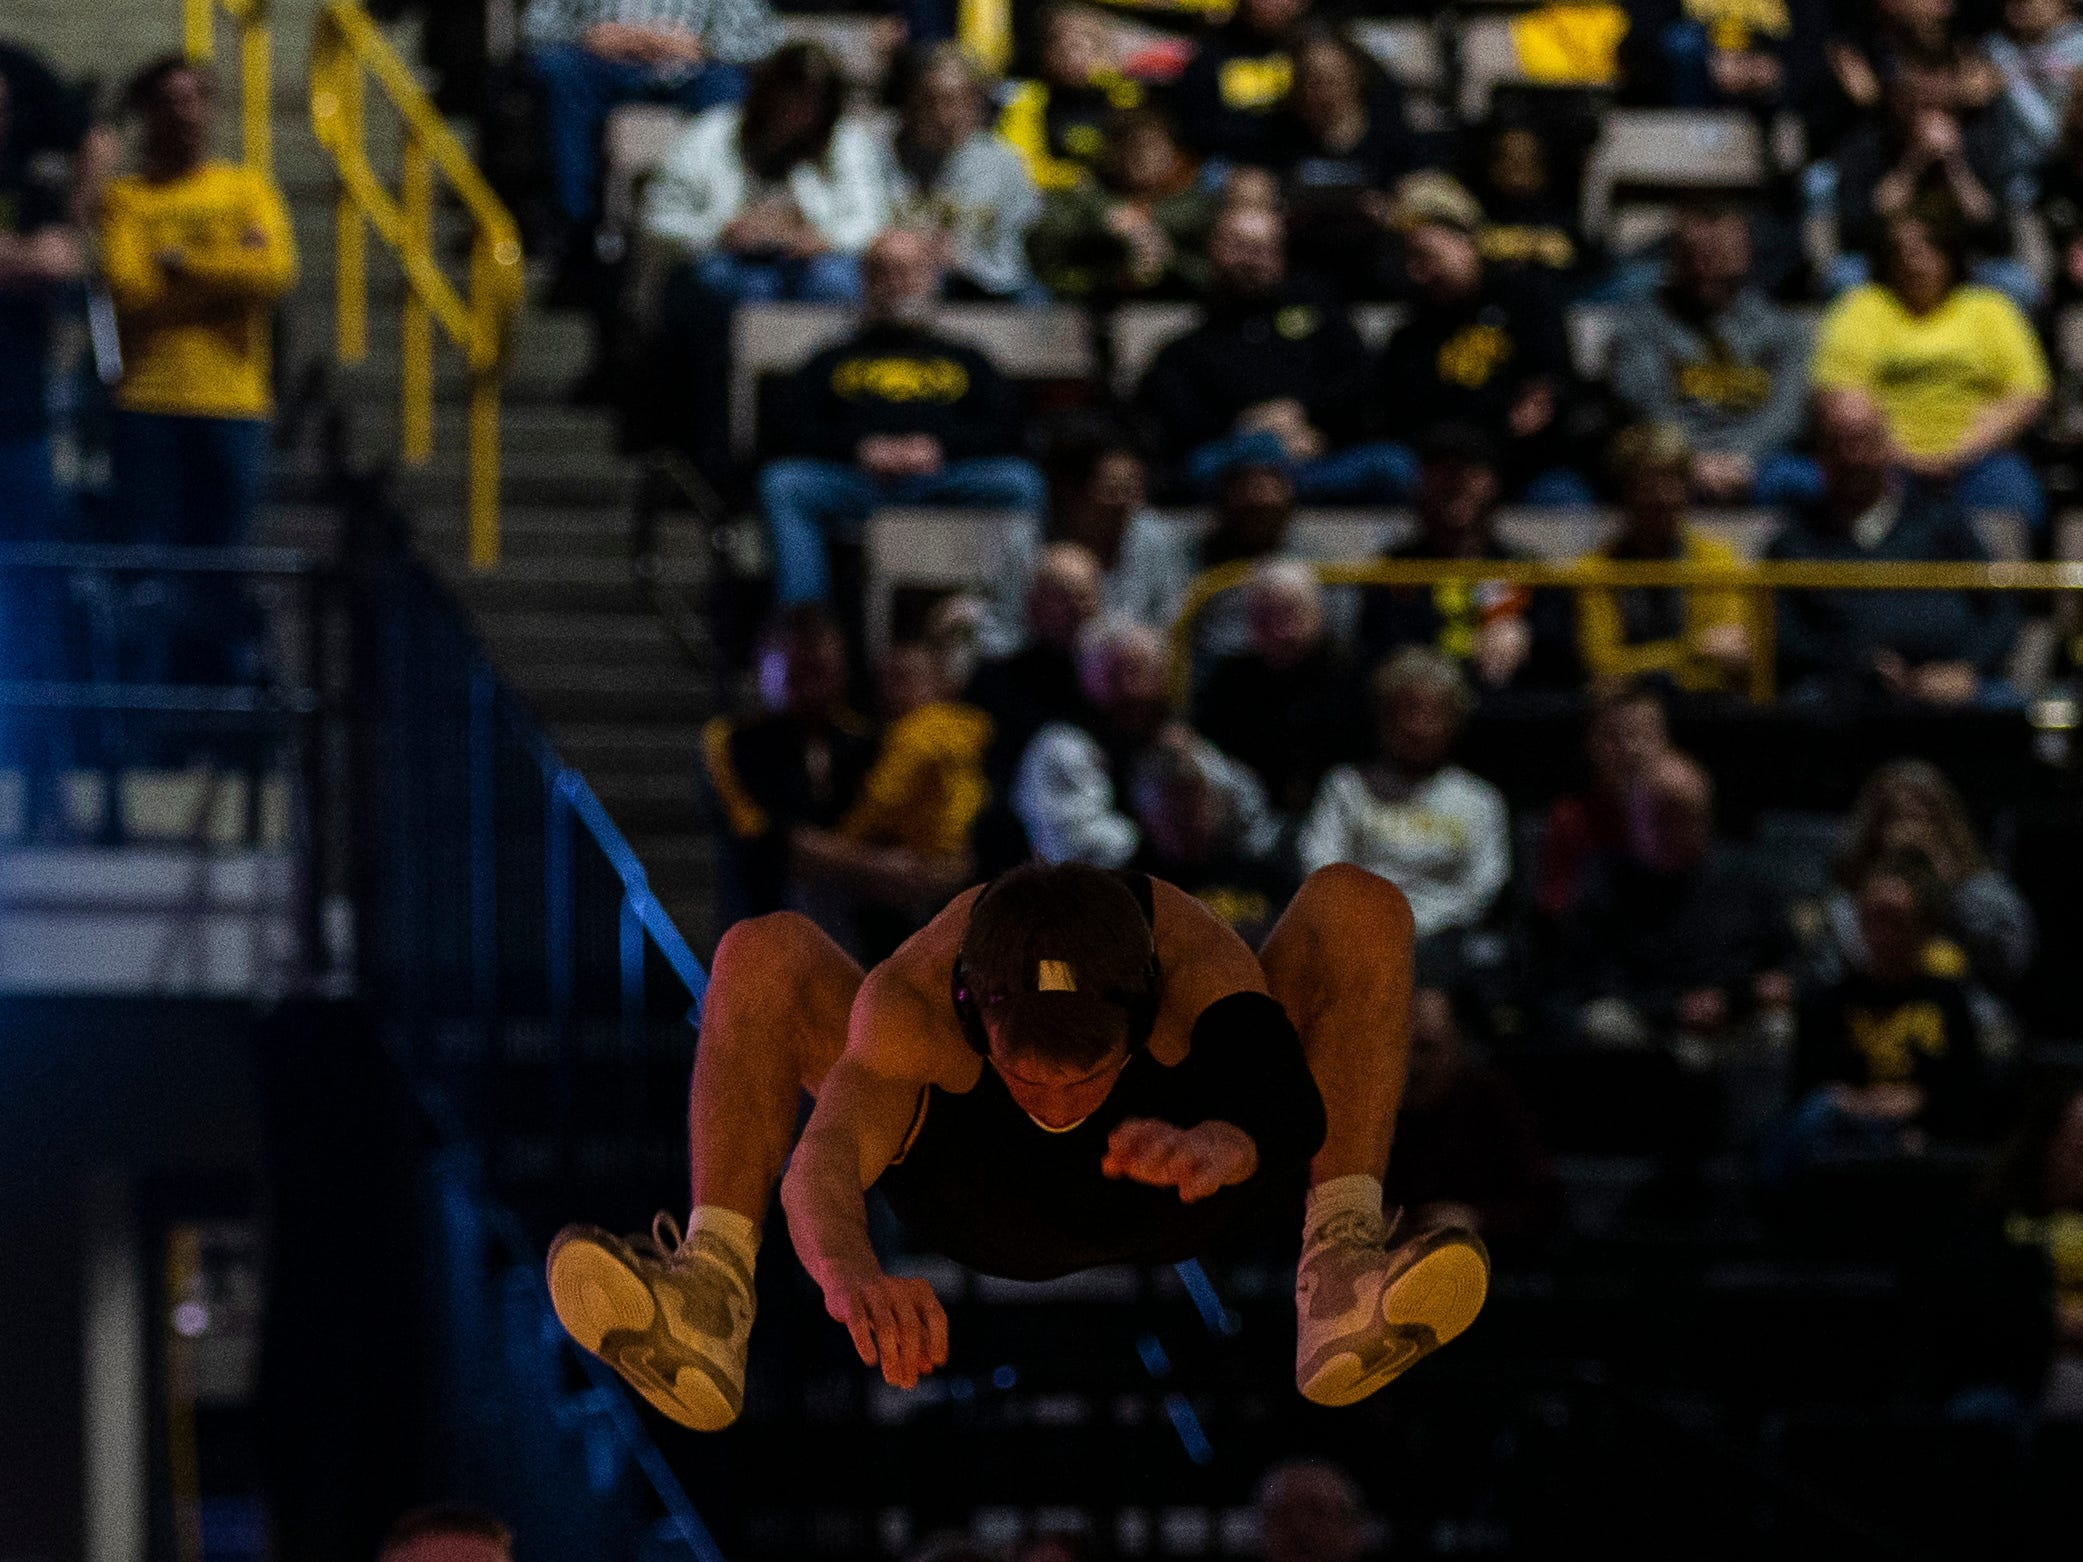 Iowa's Max Murin jumps onto the mat before his match at 141 against Indiana during a NCAA Big Ten Conference wrestling dual on Friday, Feb. 15, 2019 at Carver-Hawkeye Arena in Iowa City, Iowa.